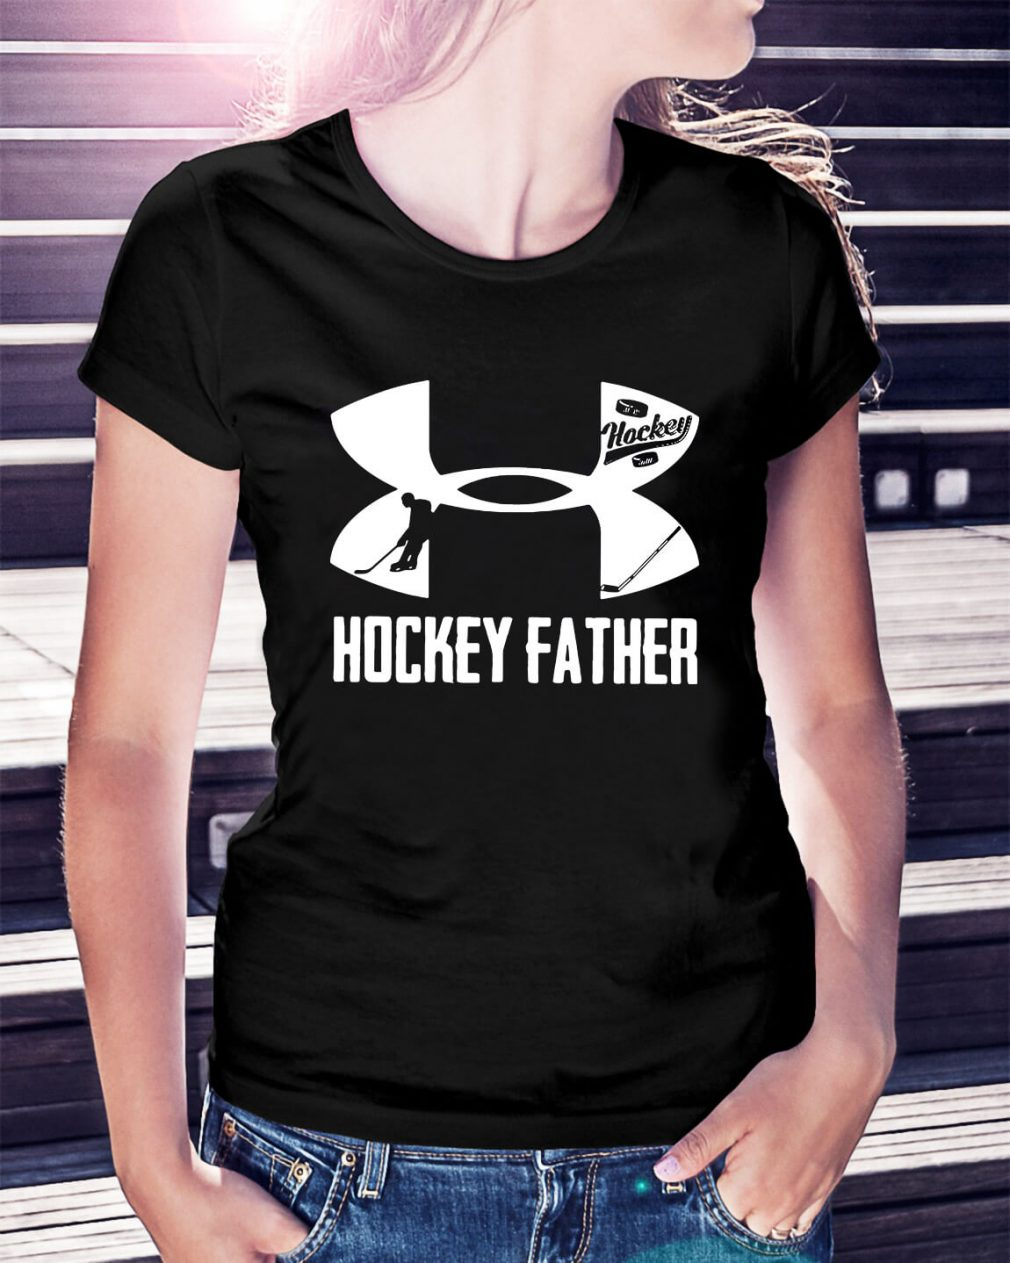 Under Armour hockey father Ladies Tee